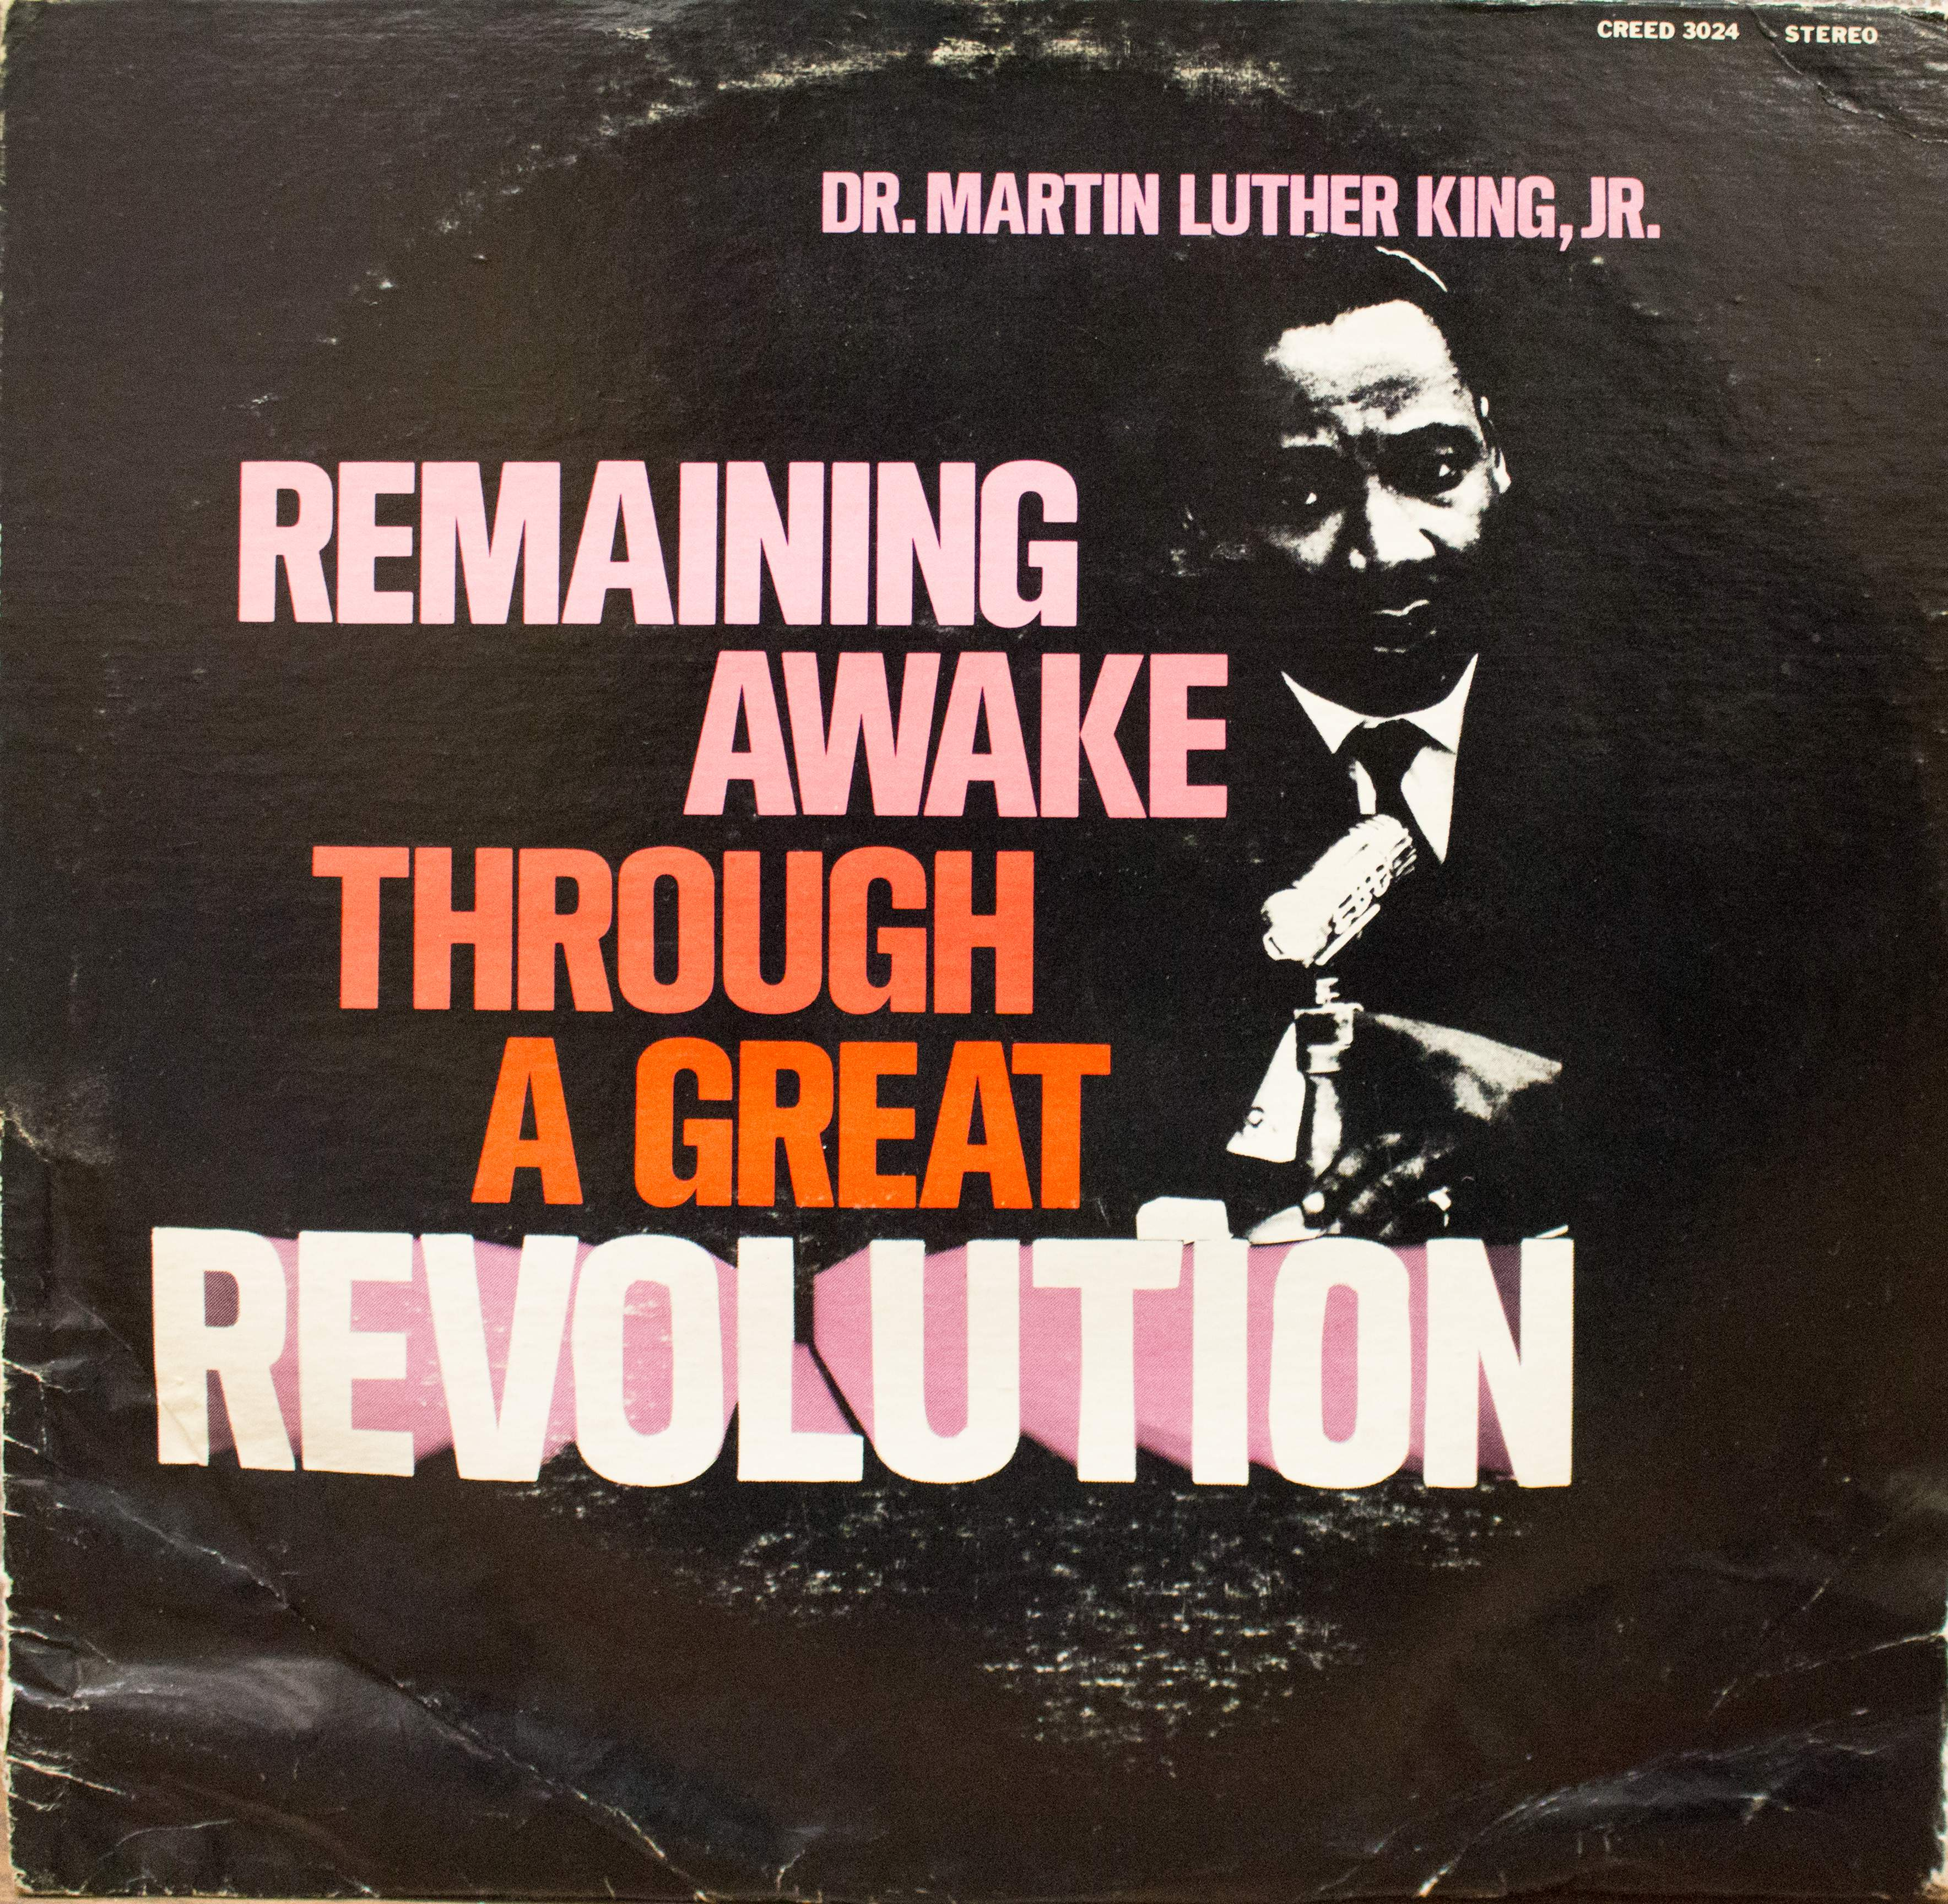 Remaining awake though a great revolution